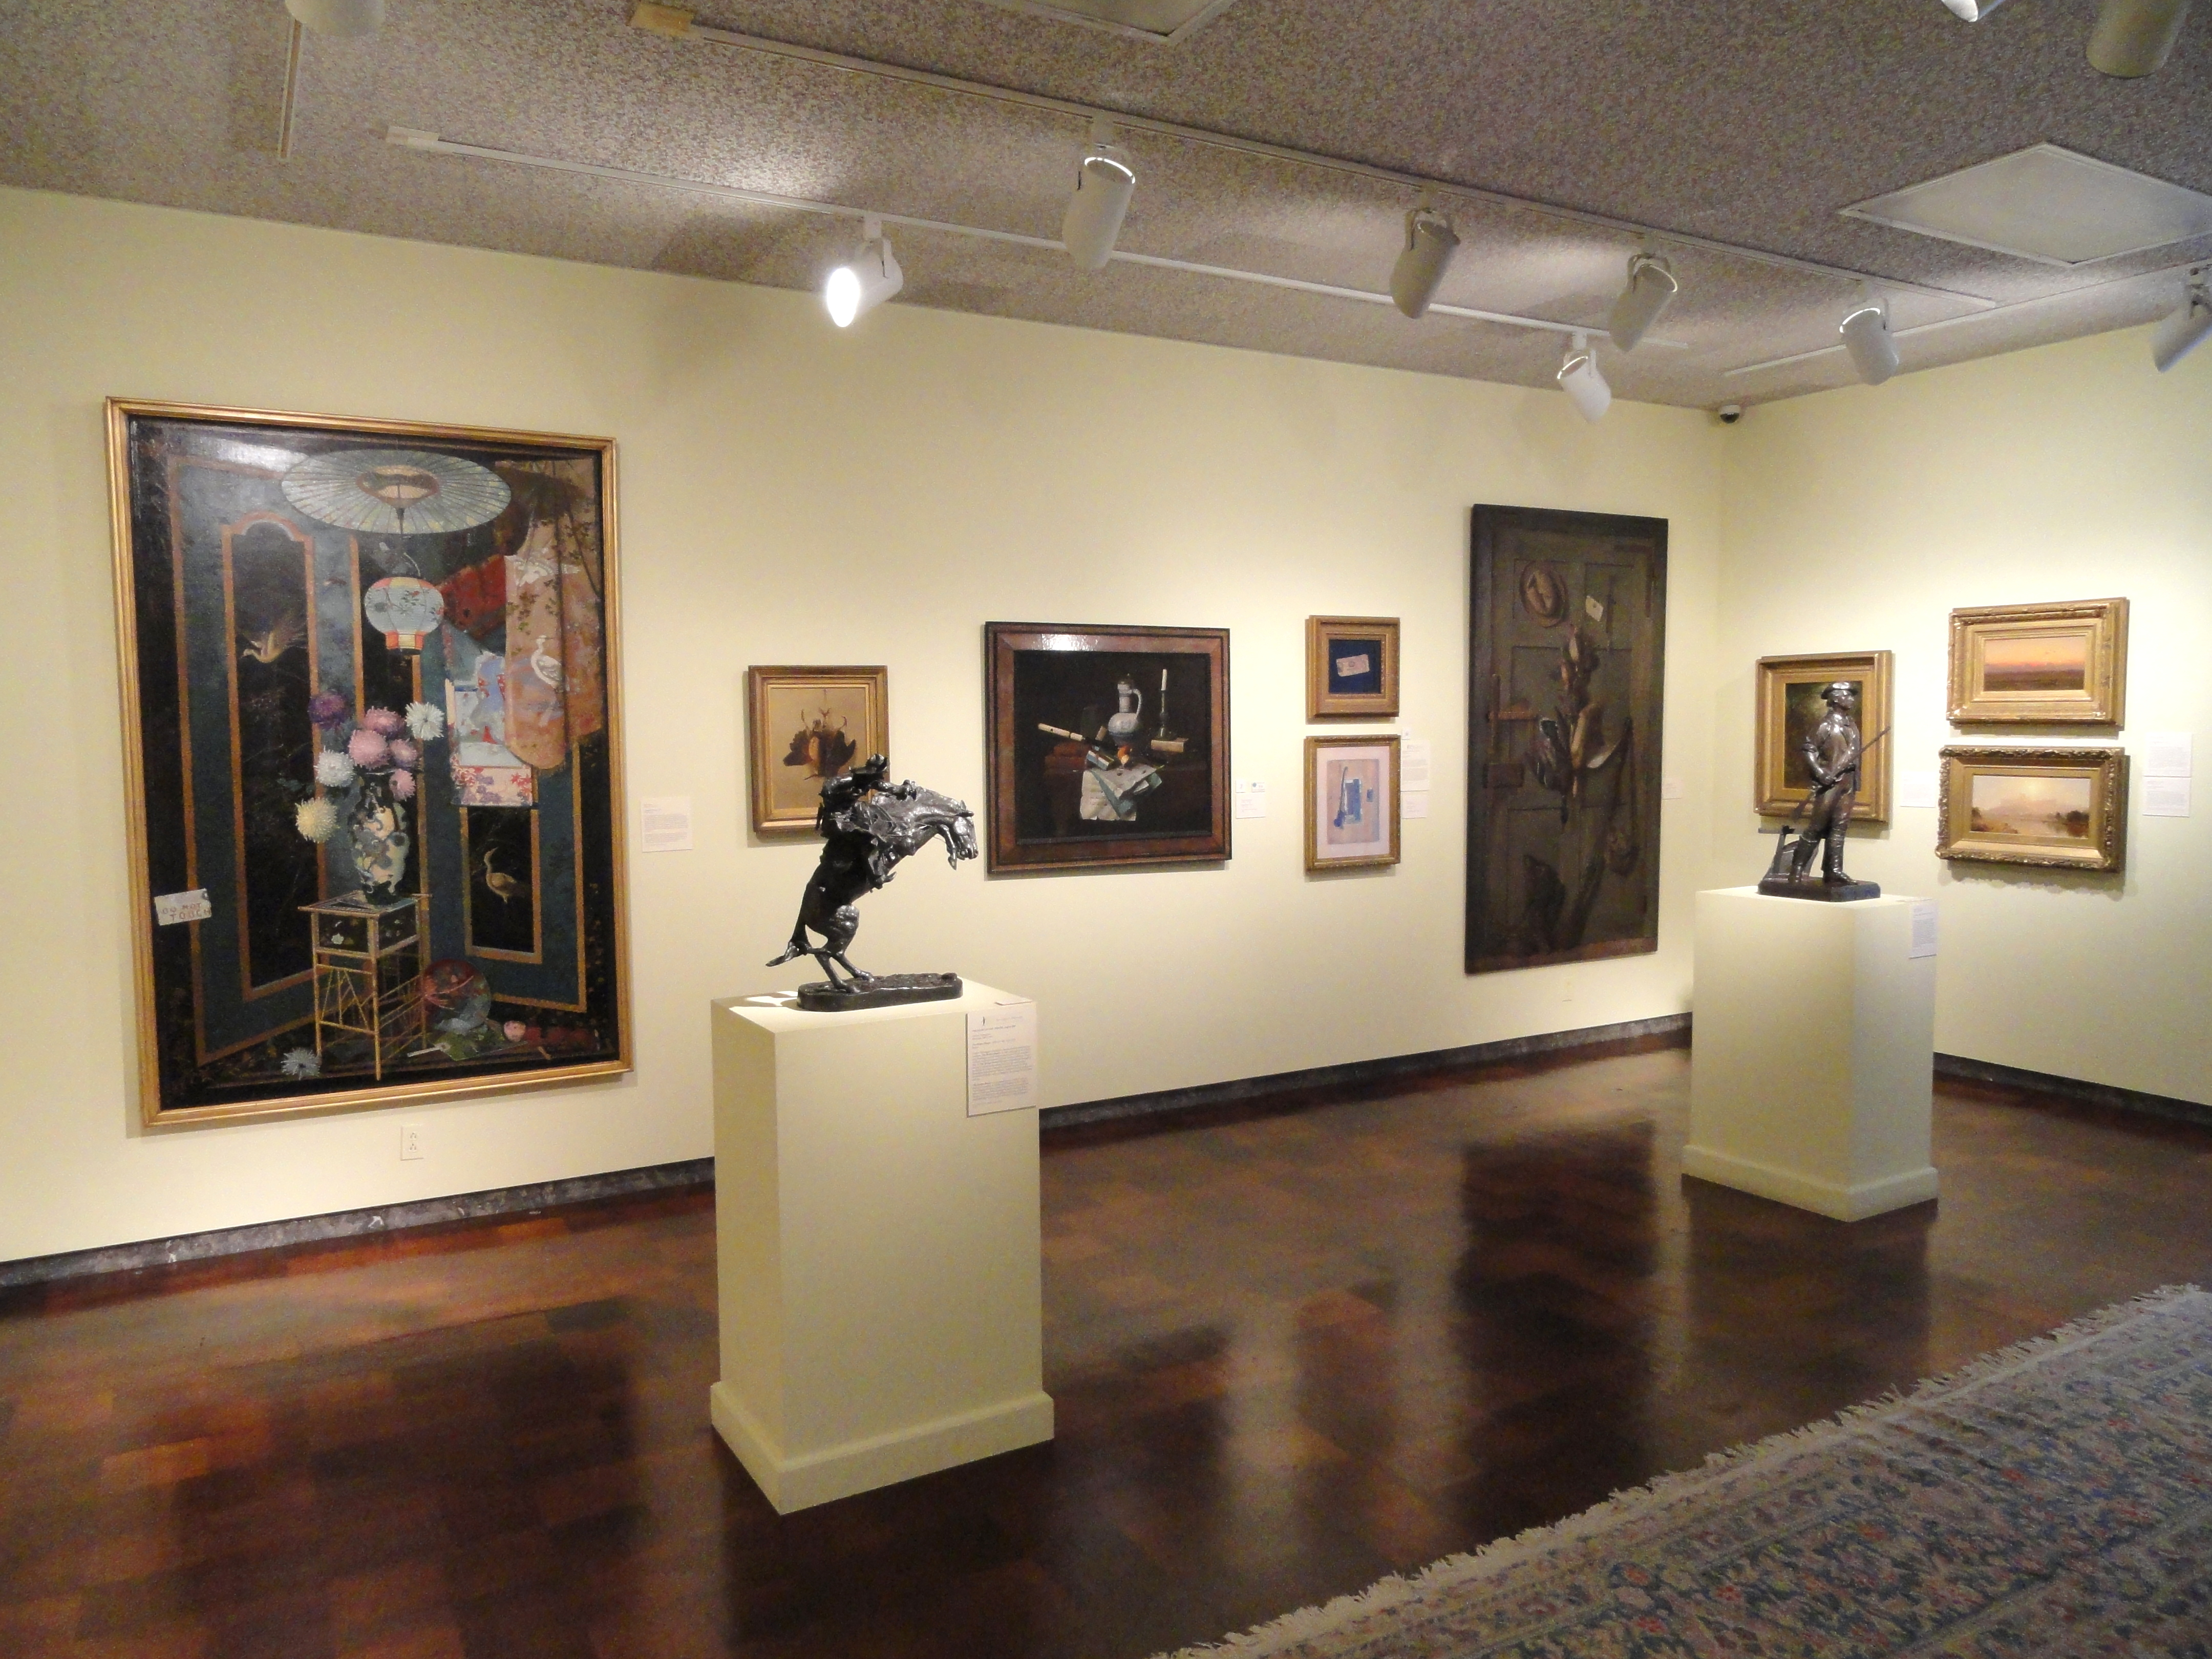 File:Interior - Museum of Fine Arts, Springfield, MA ...